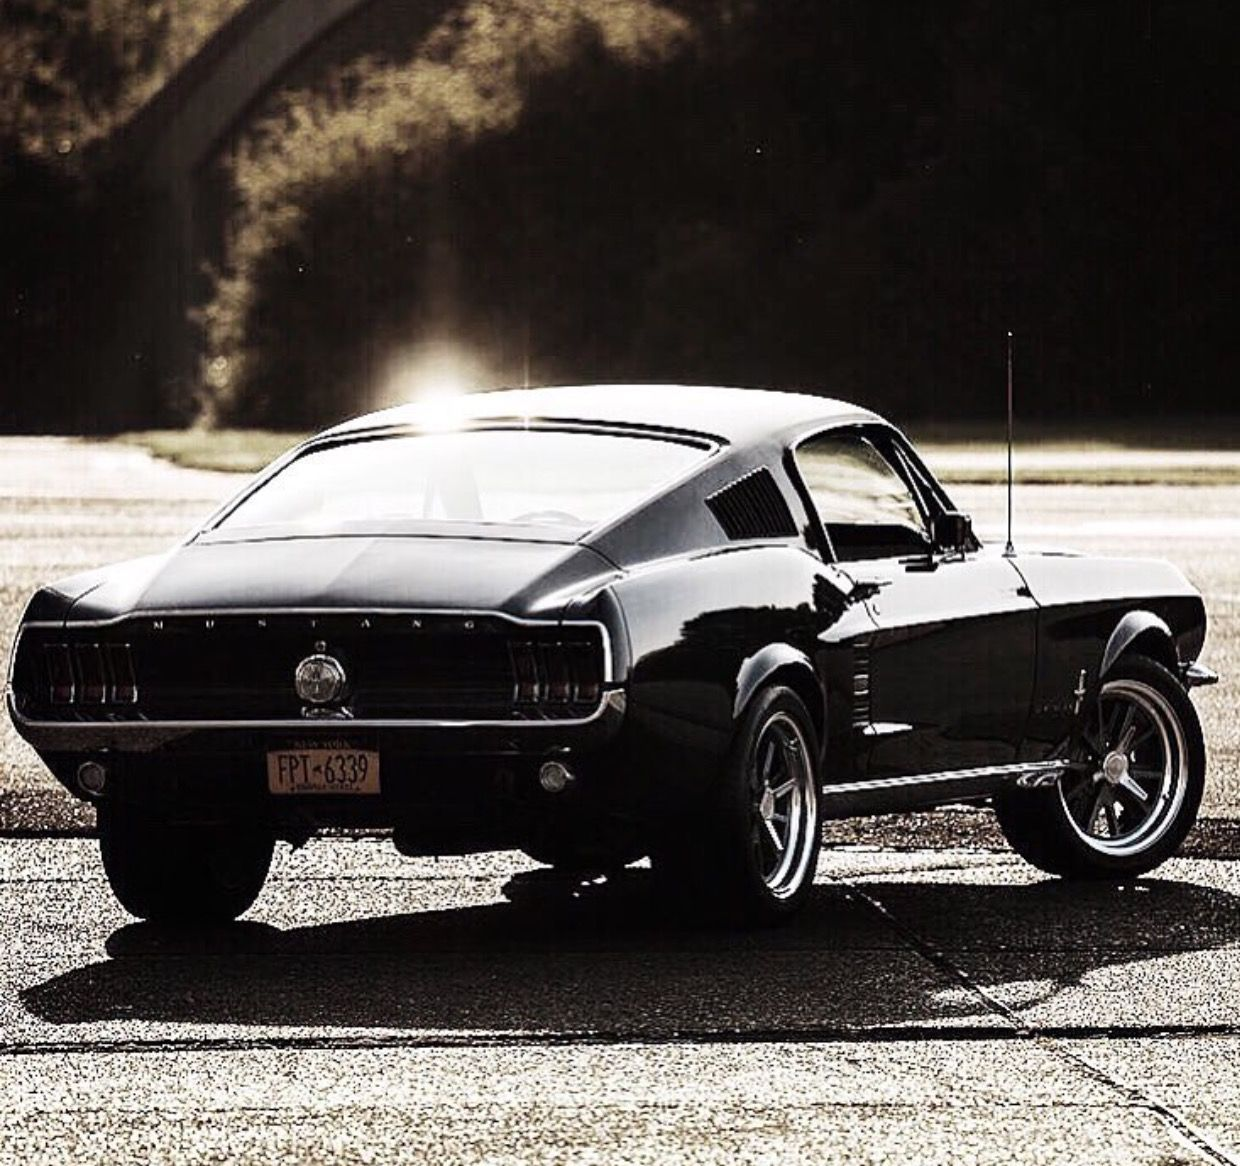 Pin By Kassandra Lenee On Him Ford Mustang Fastback Mustang Fastback Ford Mustang